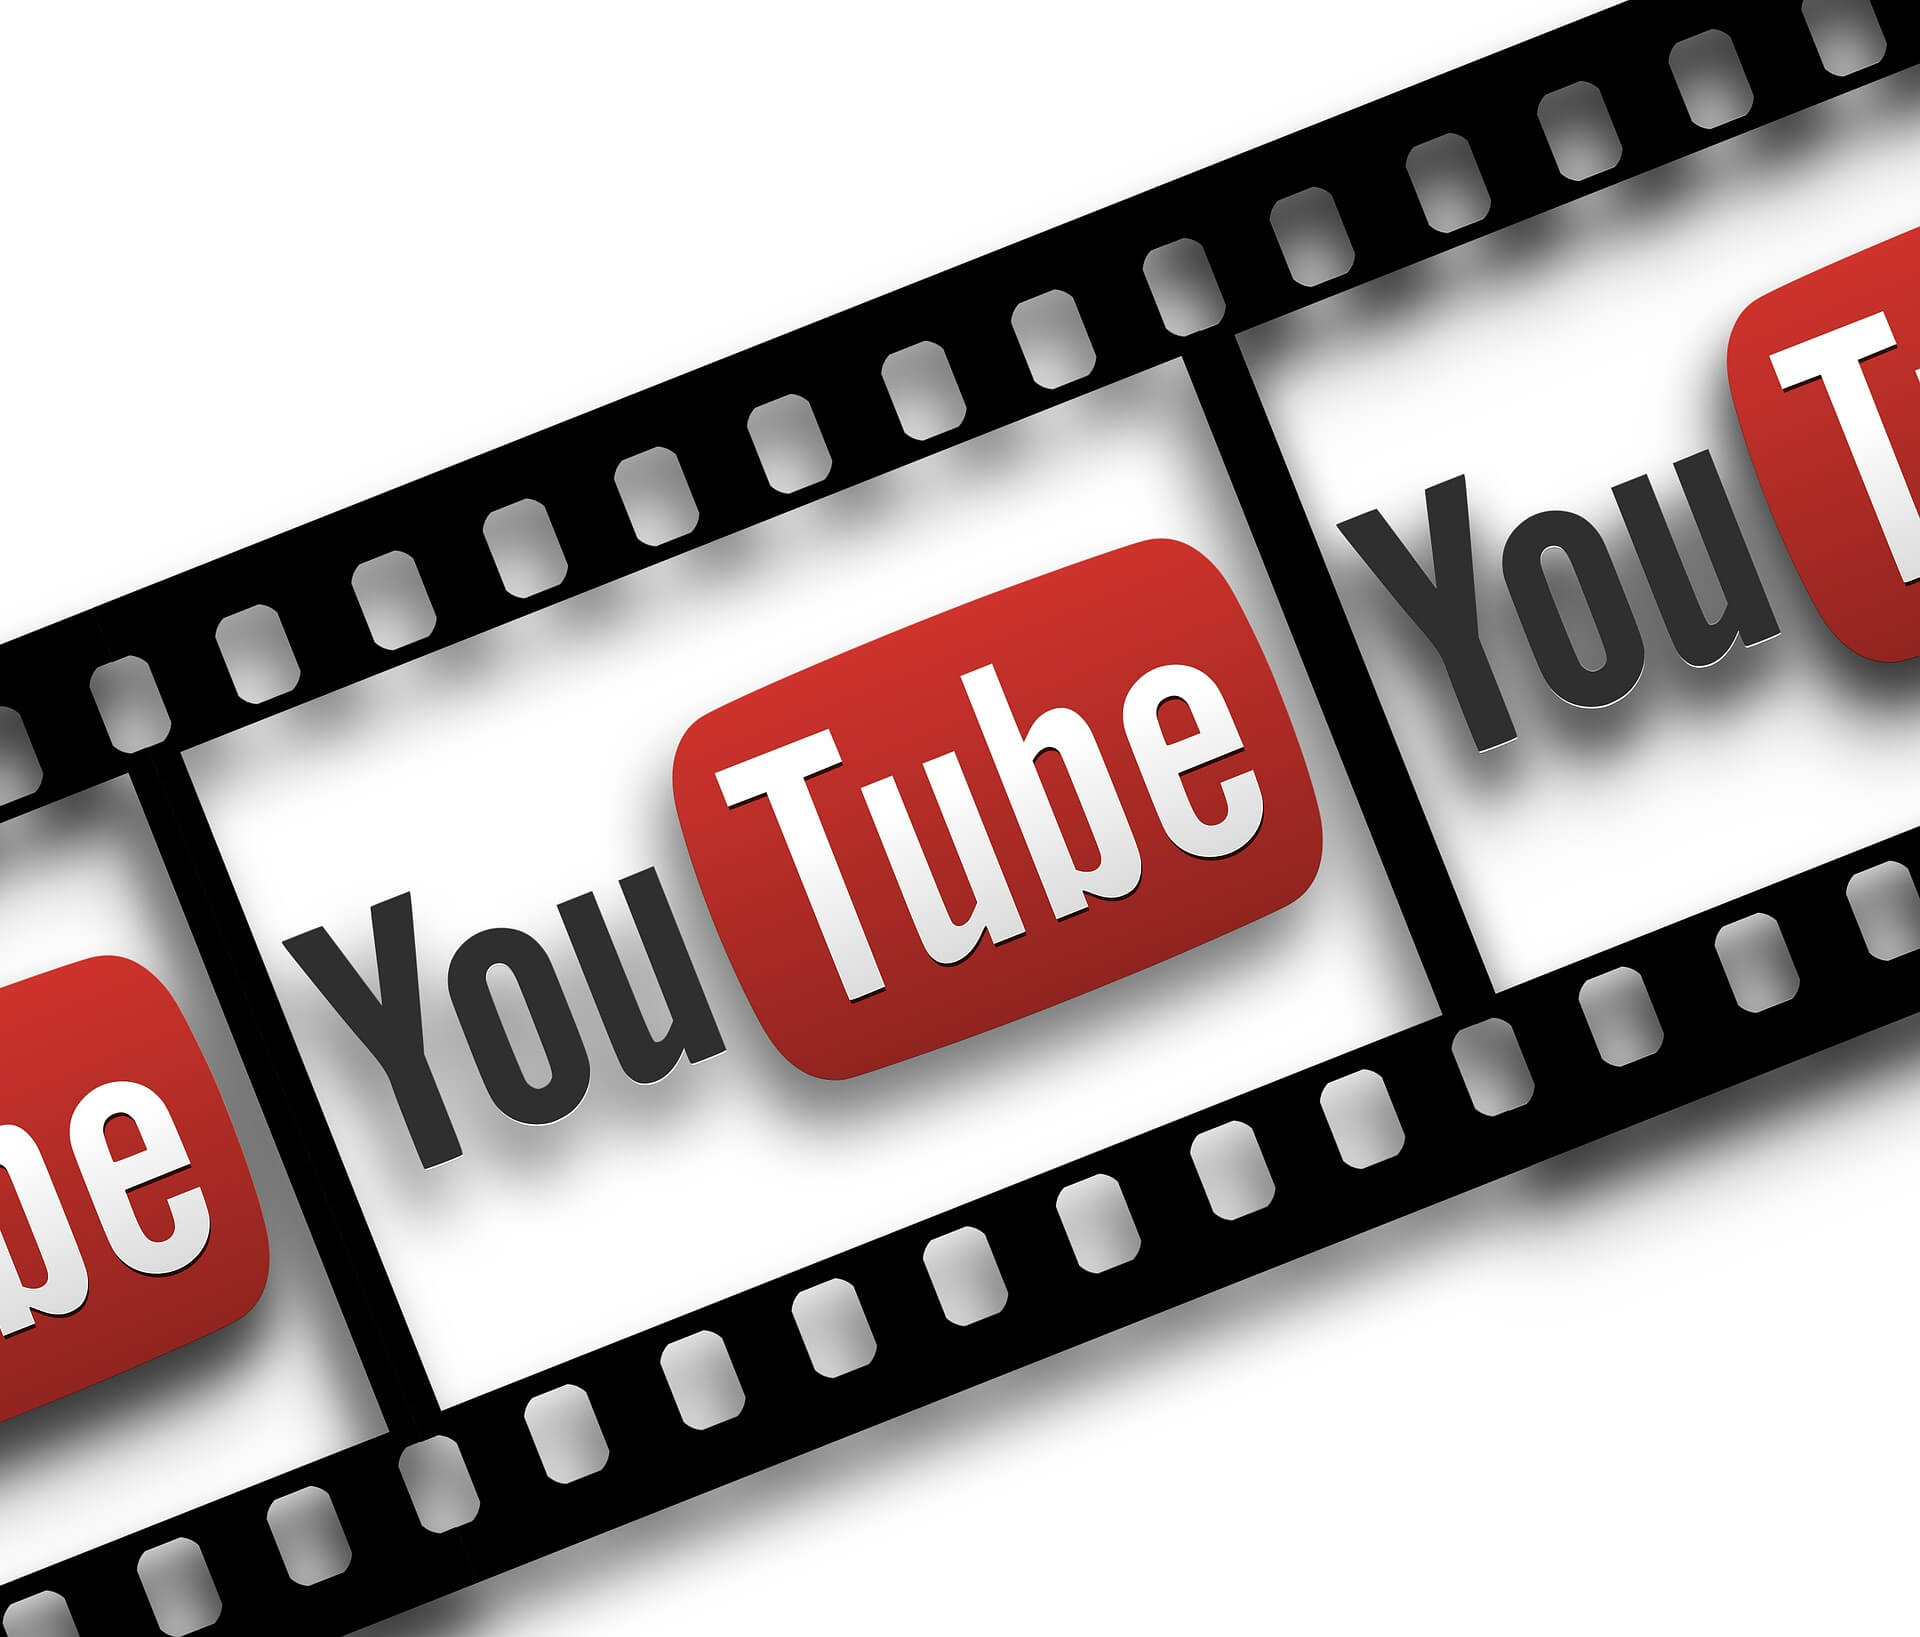 How to Make Money on YouTube Even if You are a Newbie